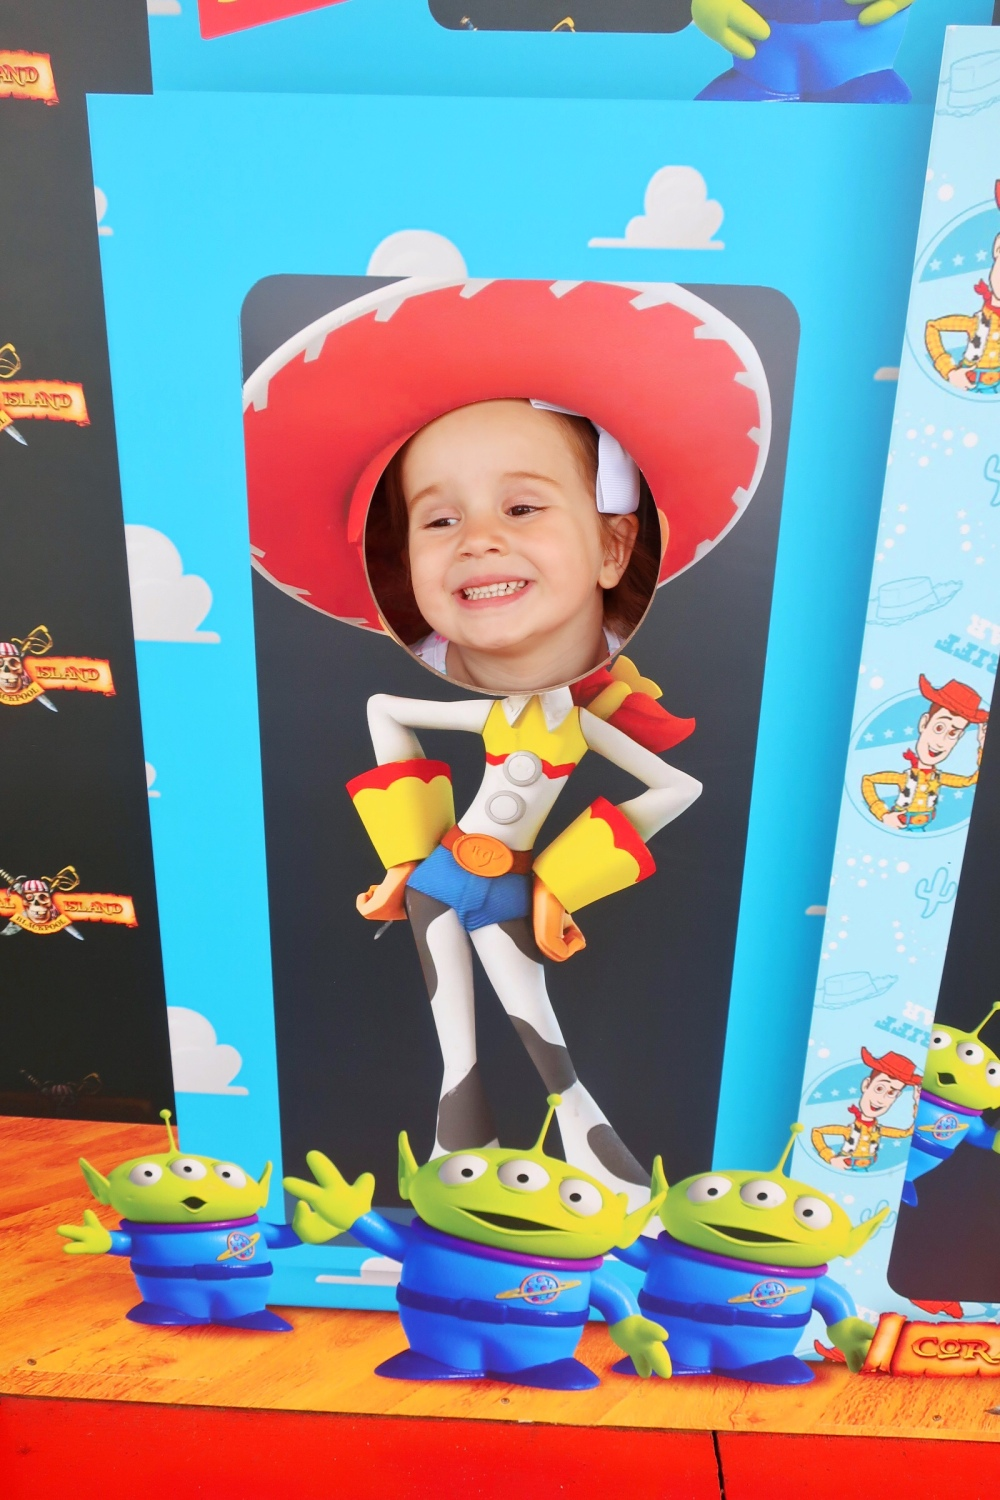 Jessie Toy Story photo board at Coral Island